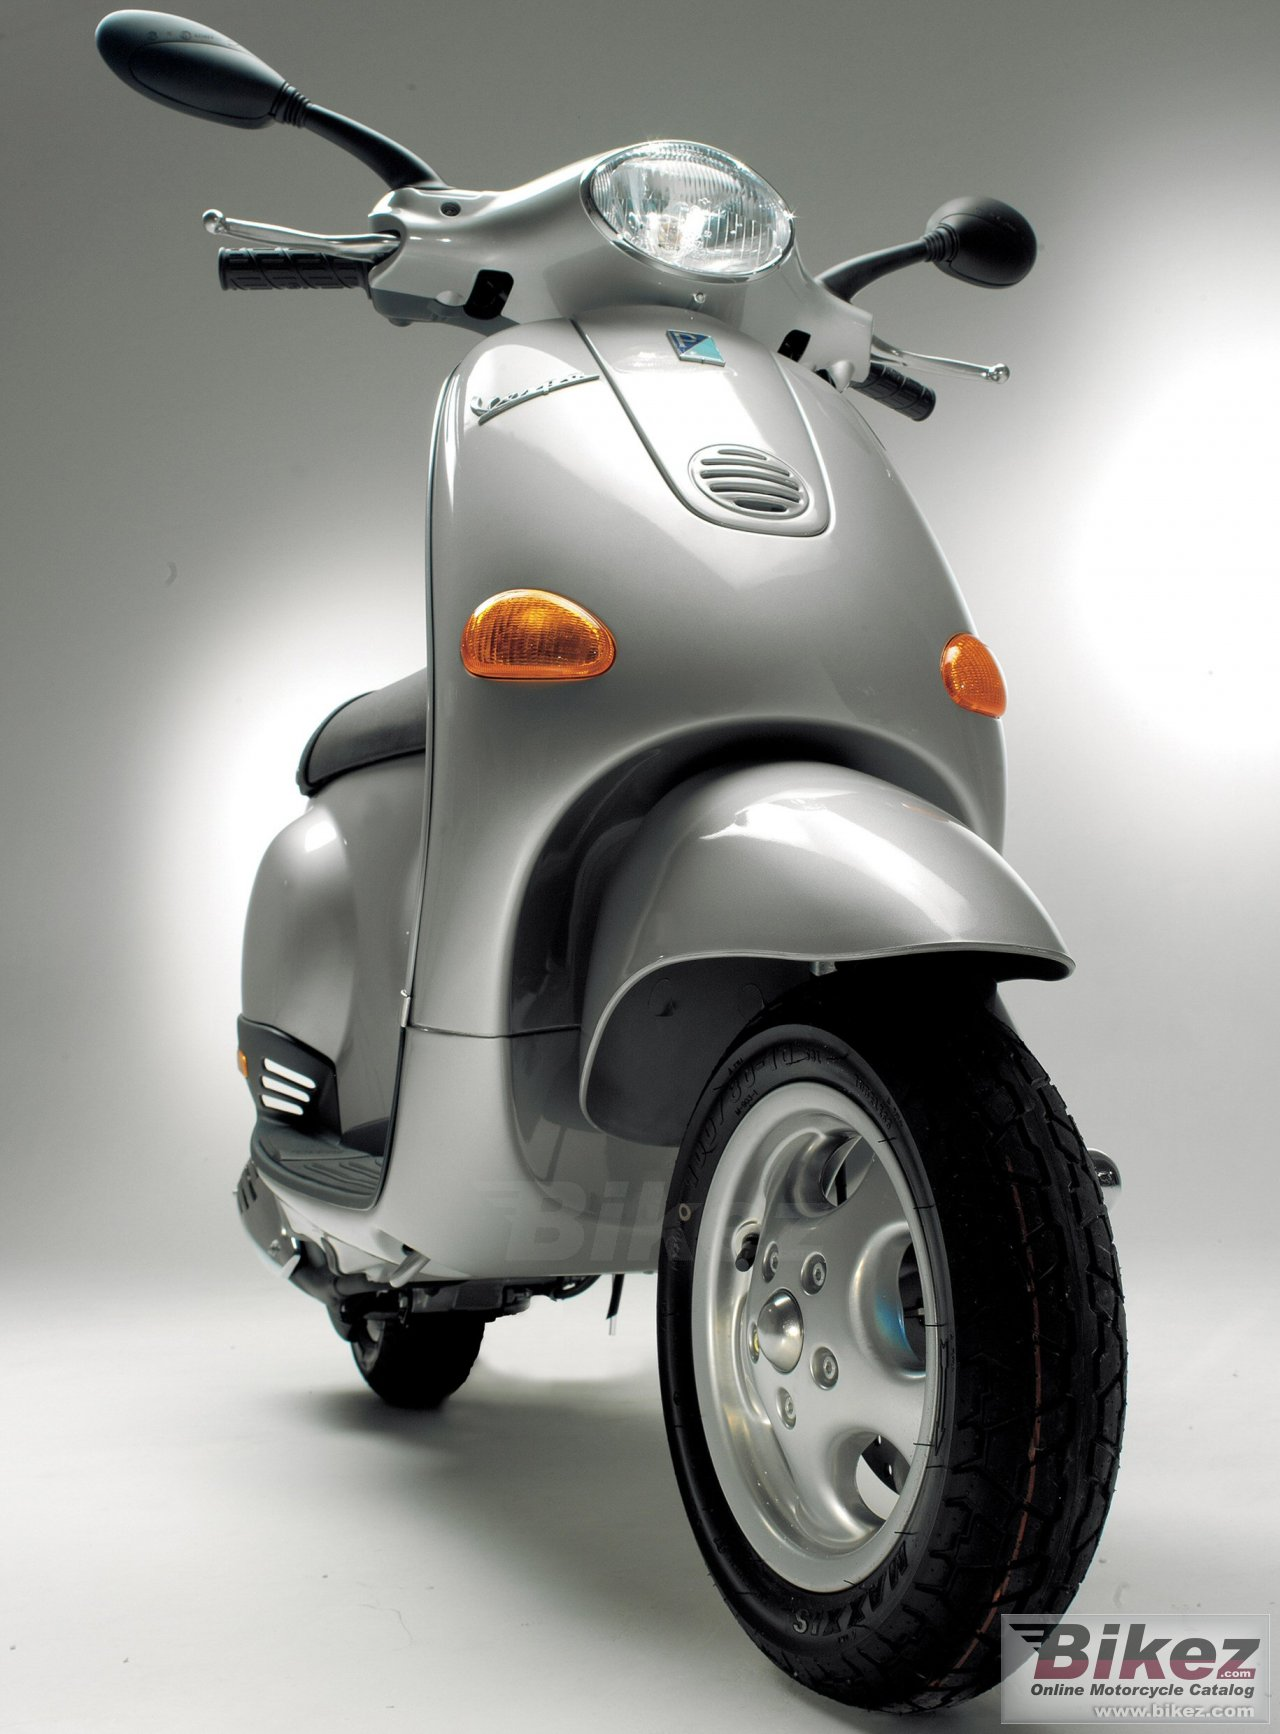 Big Vespa et4 50 picture and wallpaper from Bikez.com